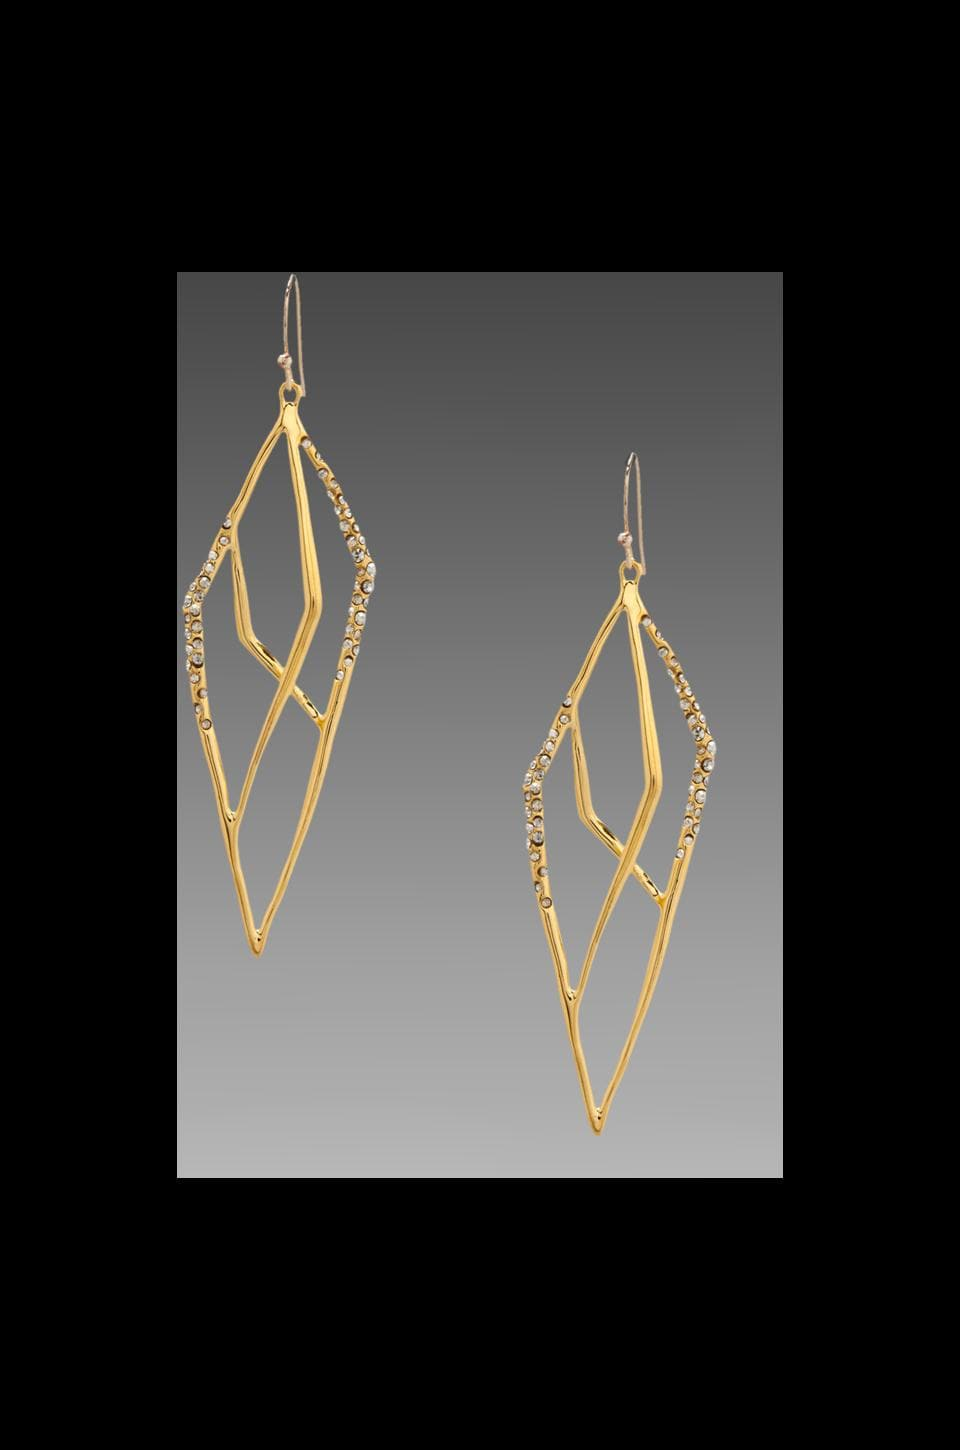 Alexis Bittar New Wave Gold Pave Layered Kite Earring